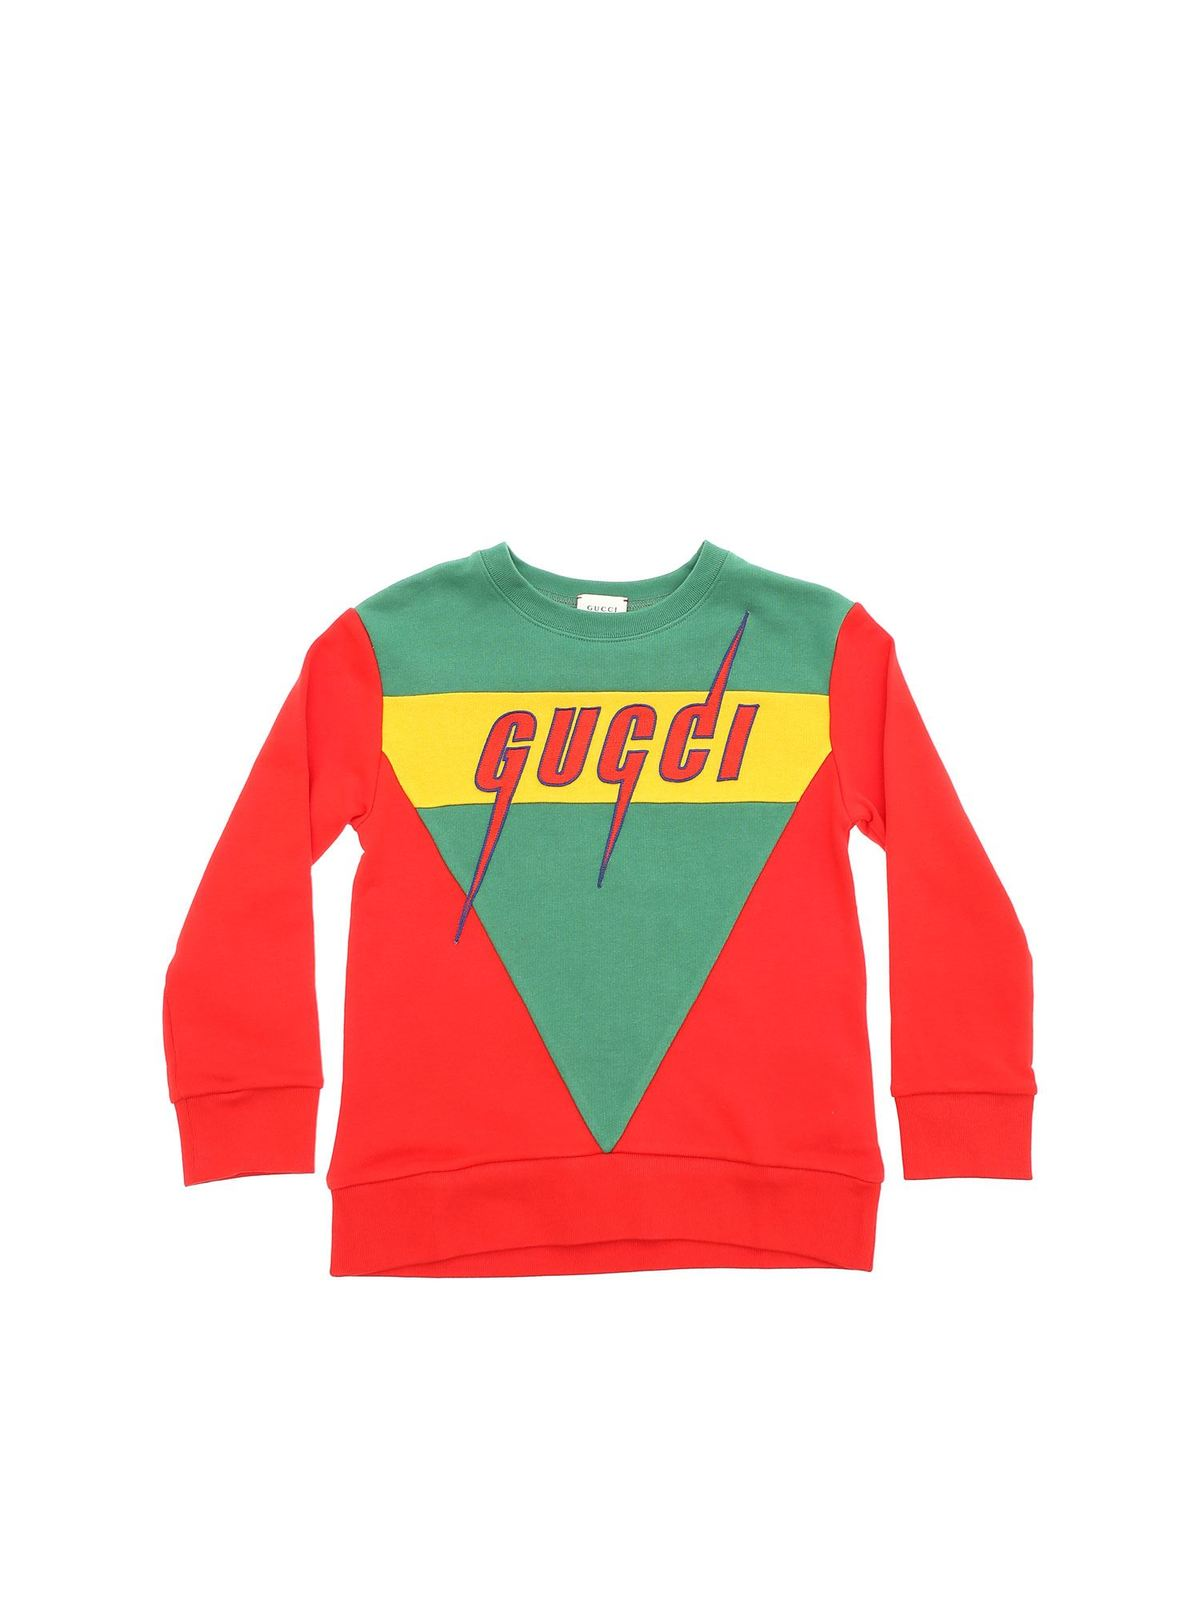 Gucci Kids' Embroidered Logo Sweatshirt In Red And Green